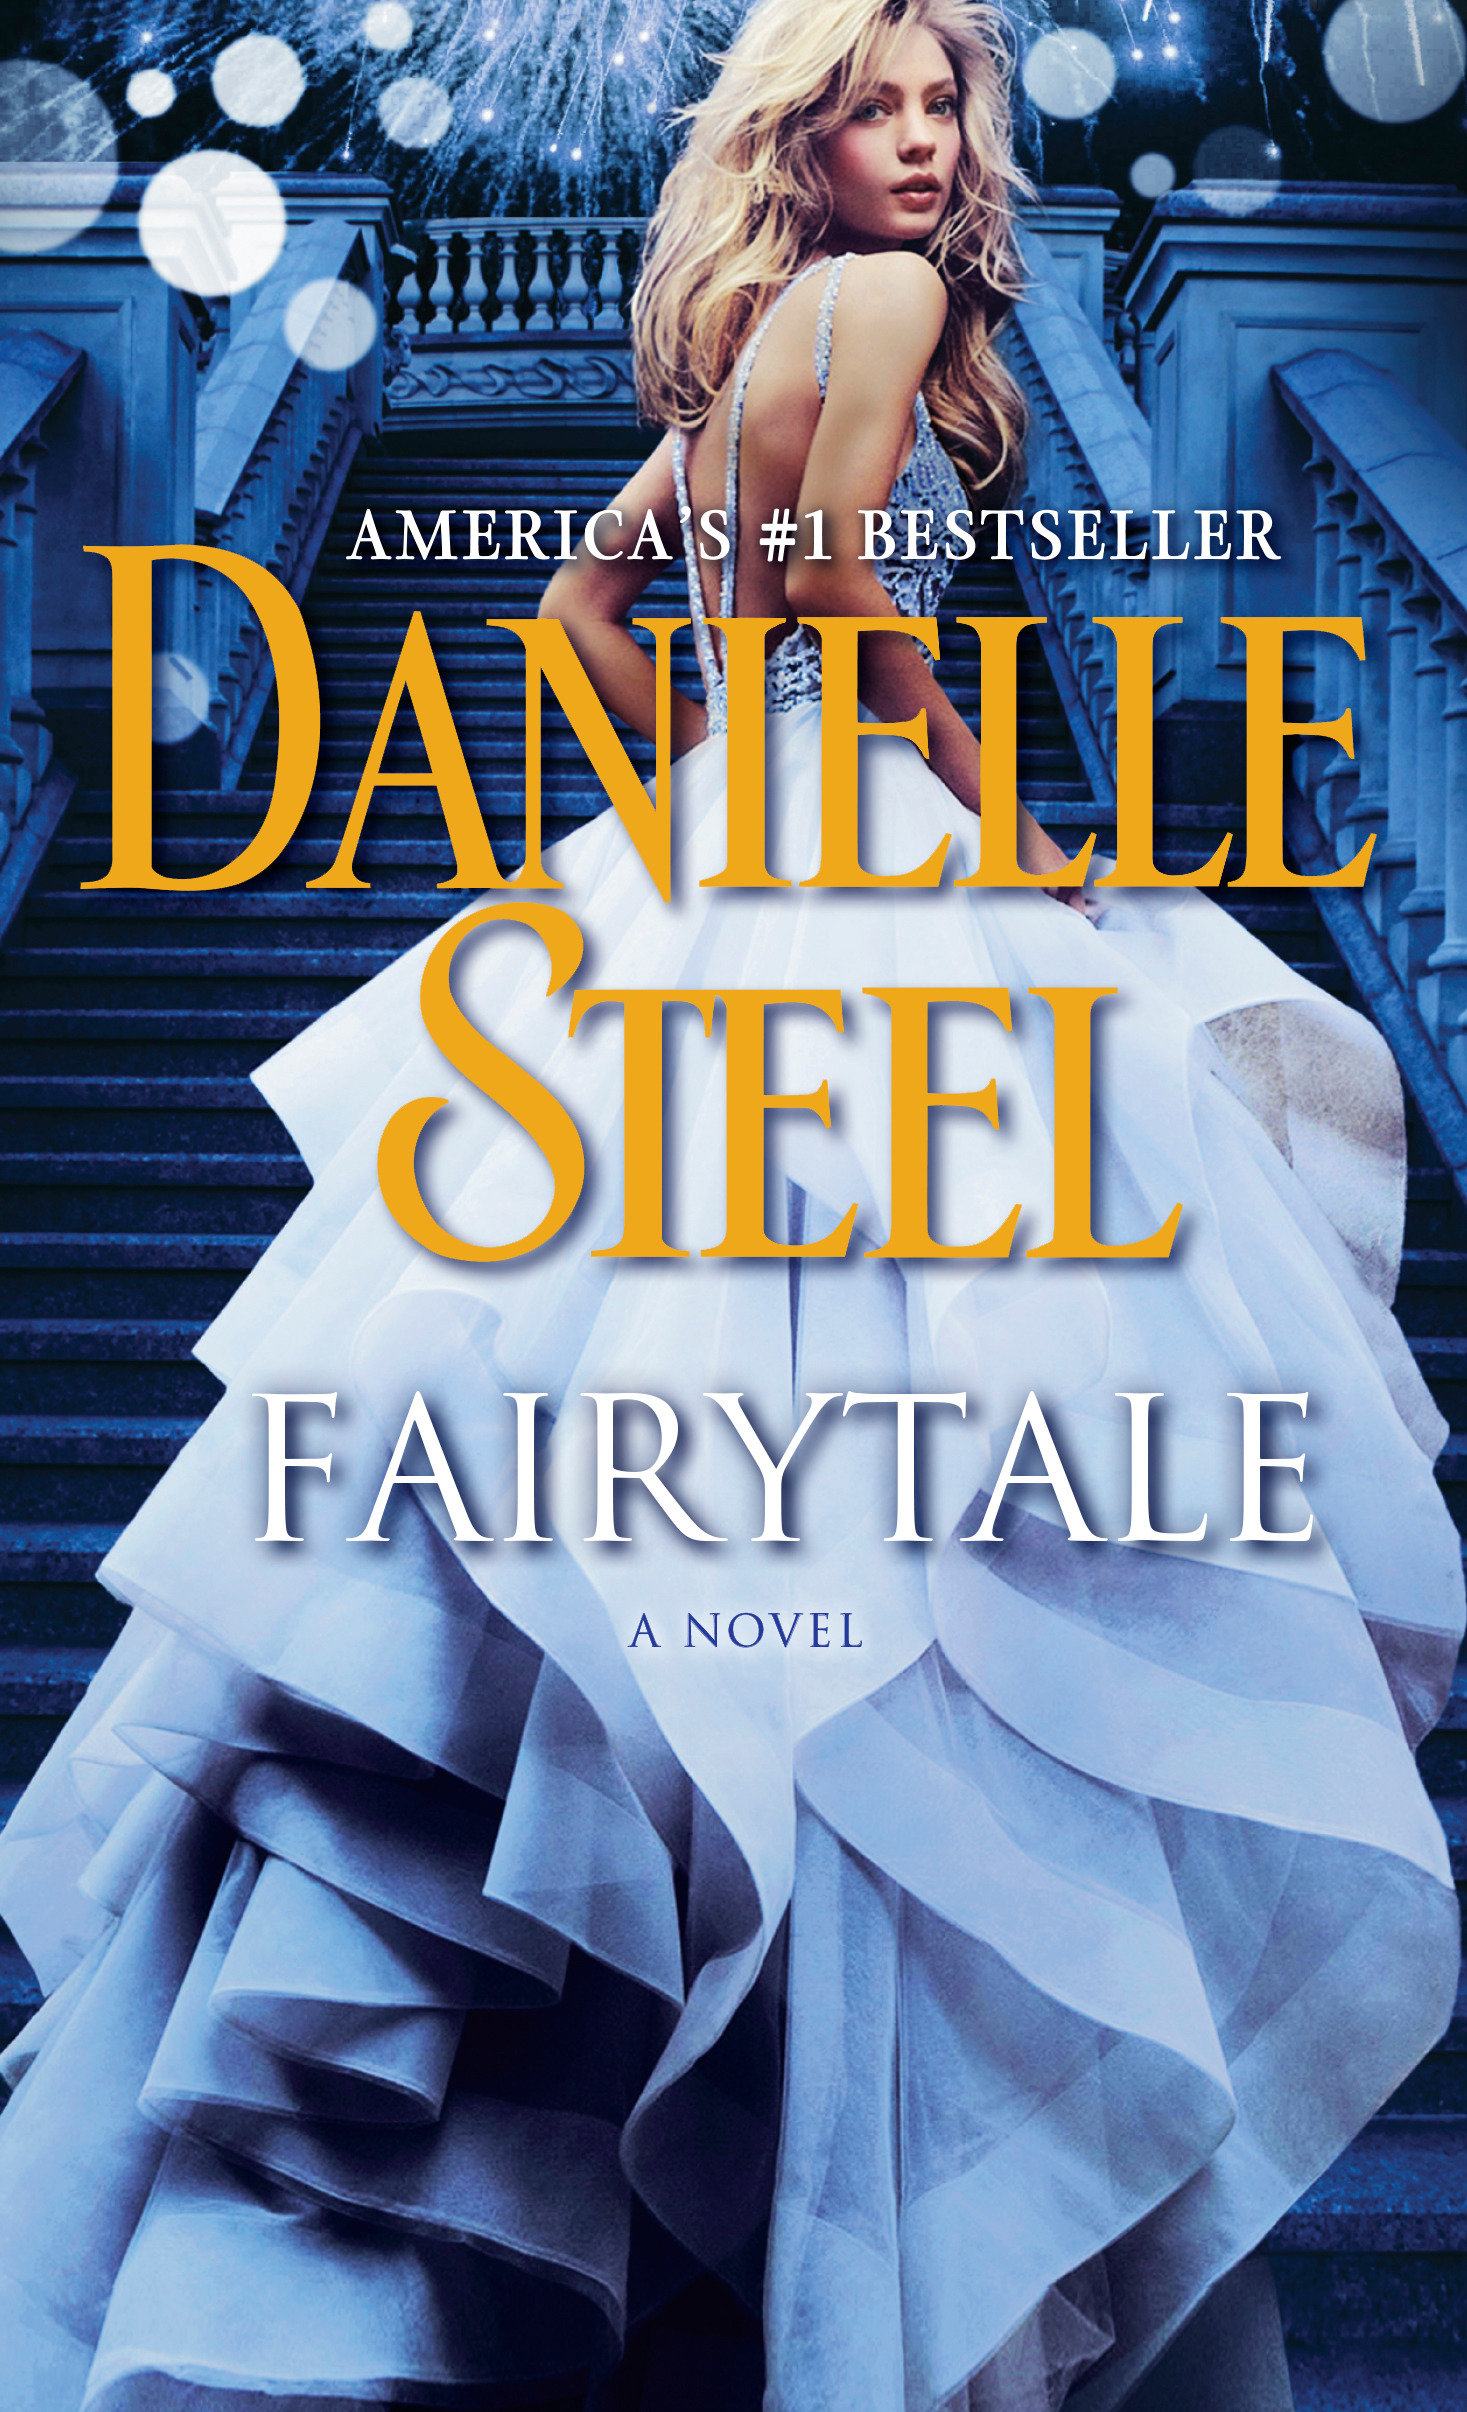 Fairytale A Novel